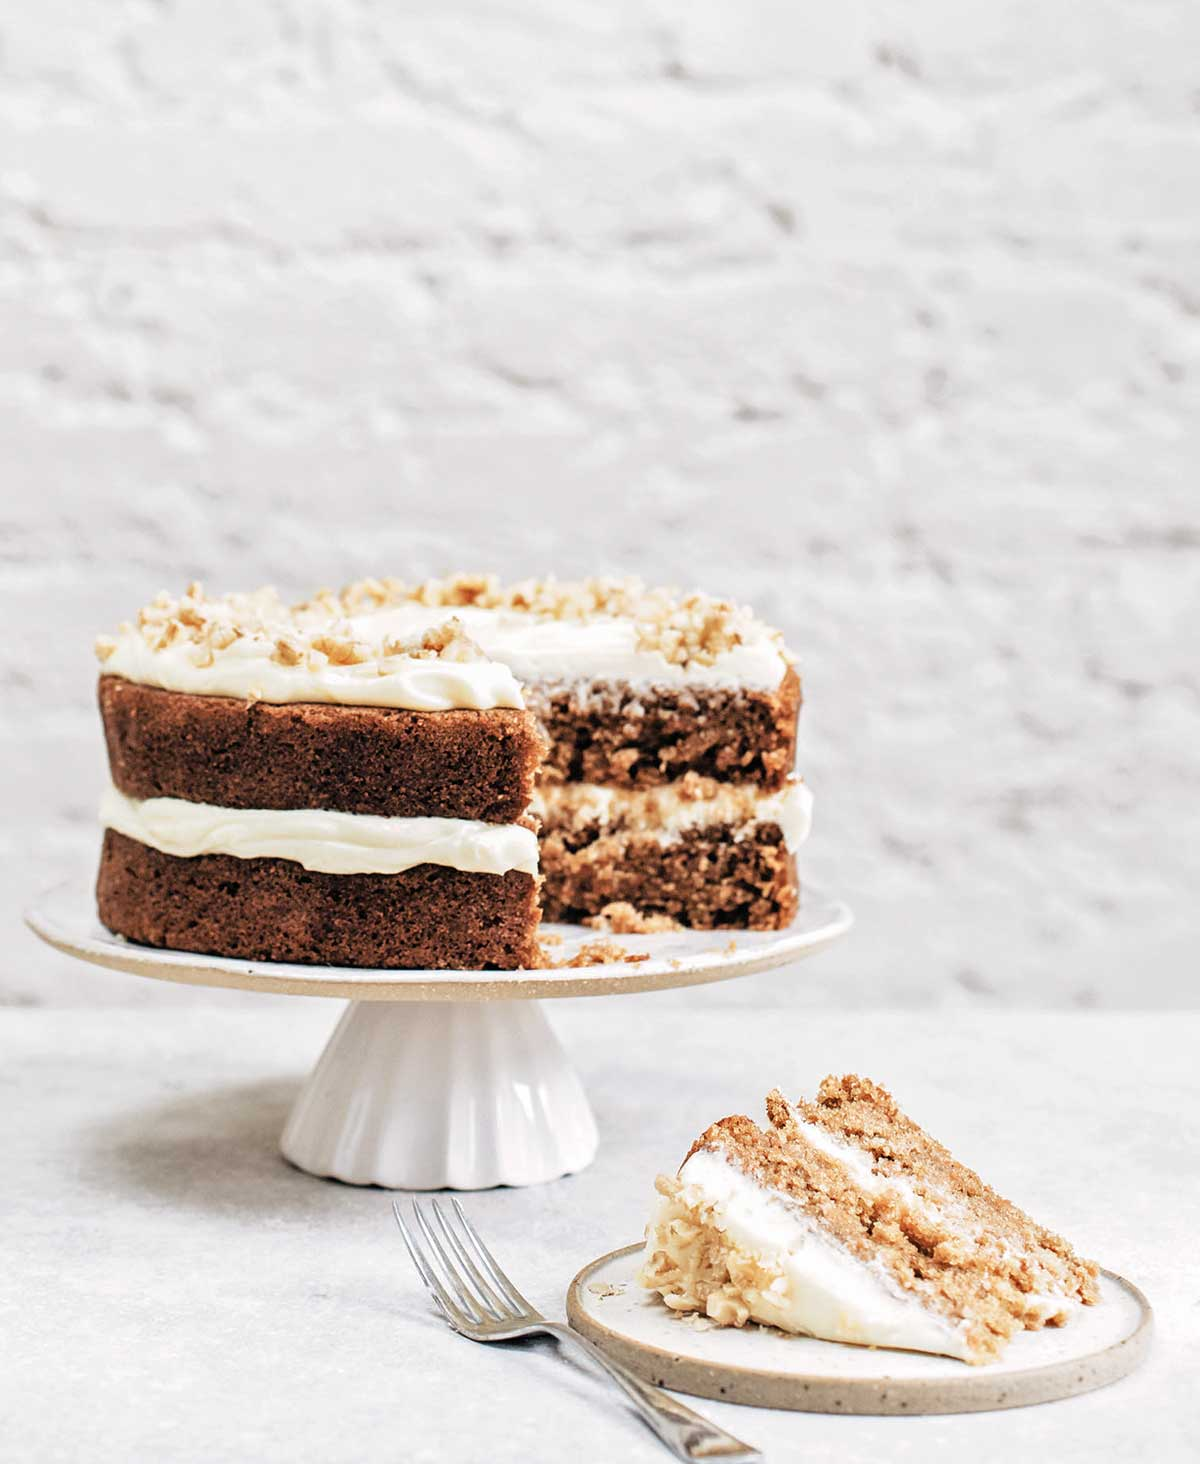 A whole two layer spiced carrot cake on a white cake stand with one slice cut from it on a plate with a fork beside it.